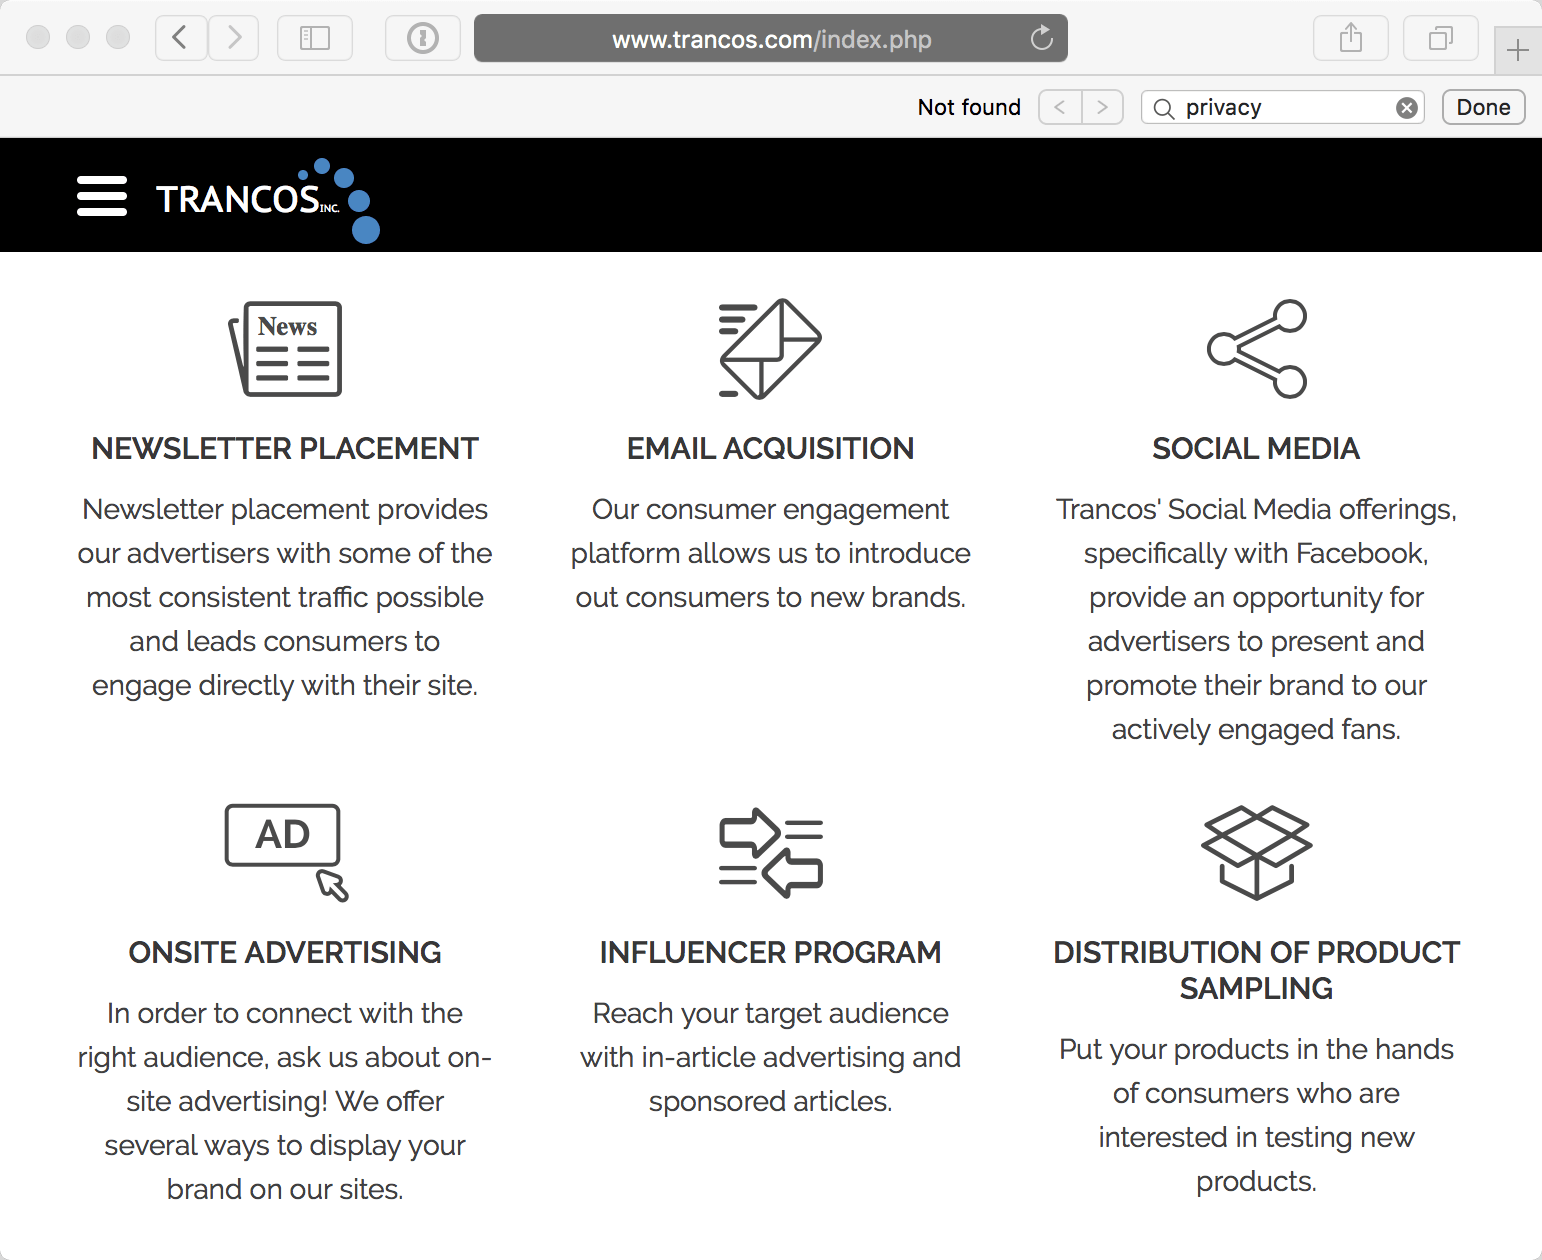 Trancos engages in newsletter placement, email acquisition, social media, onsite advertising, influencer programs, and distribution of product sampling.